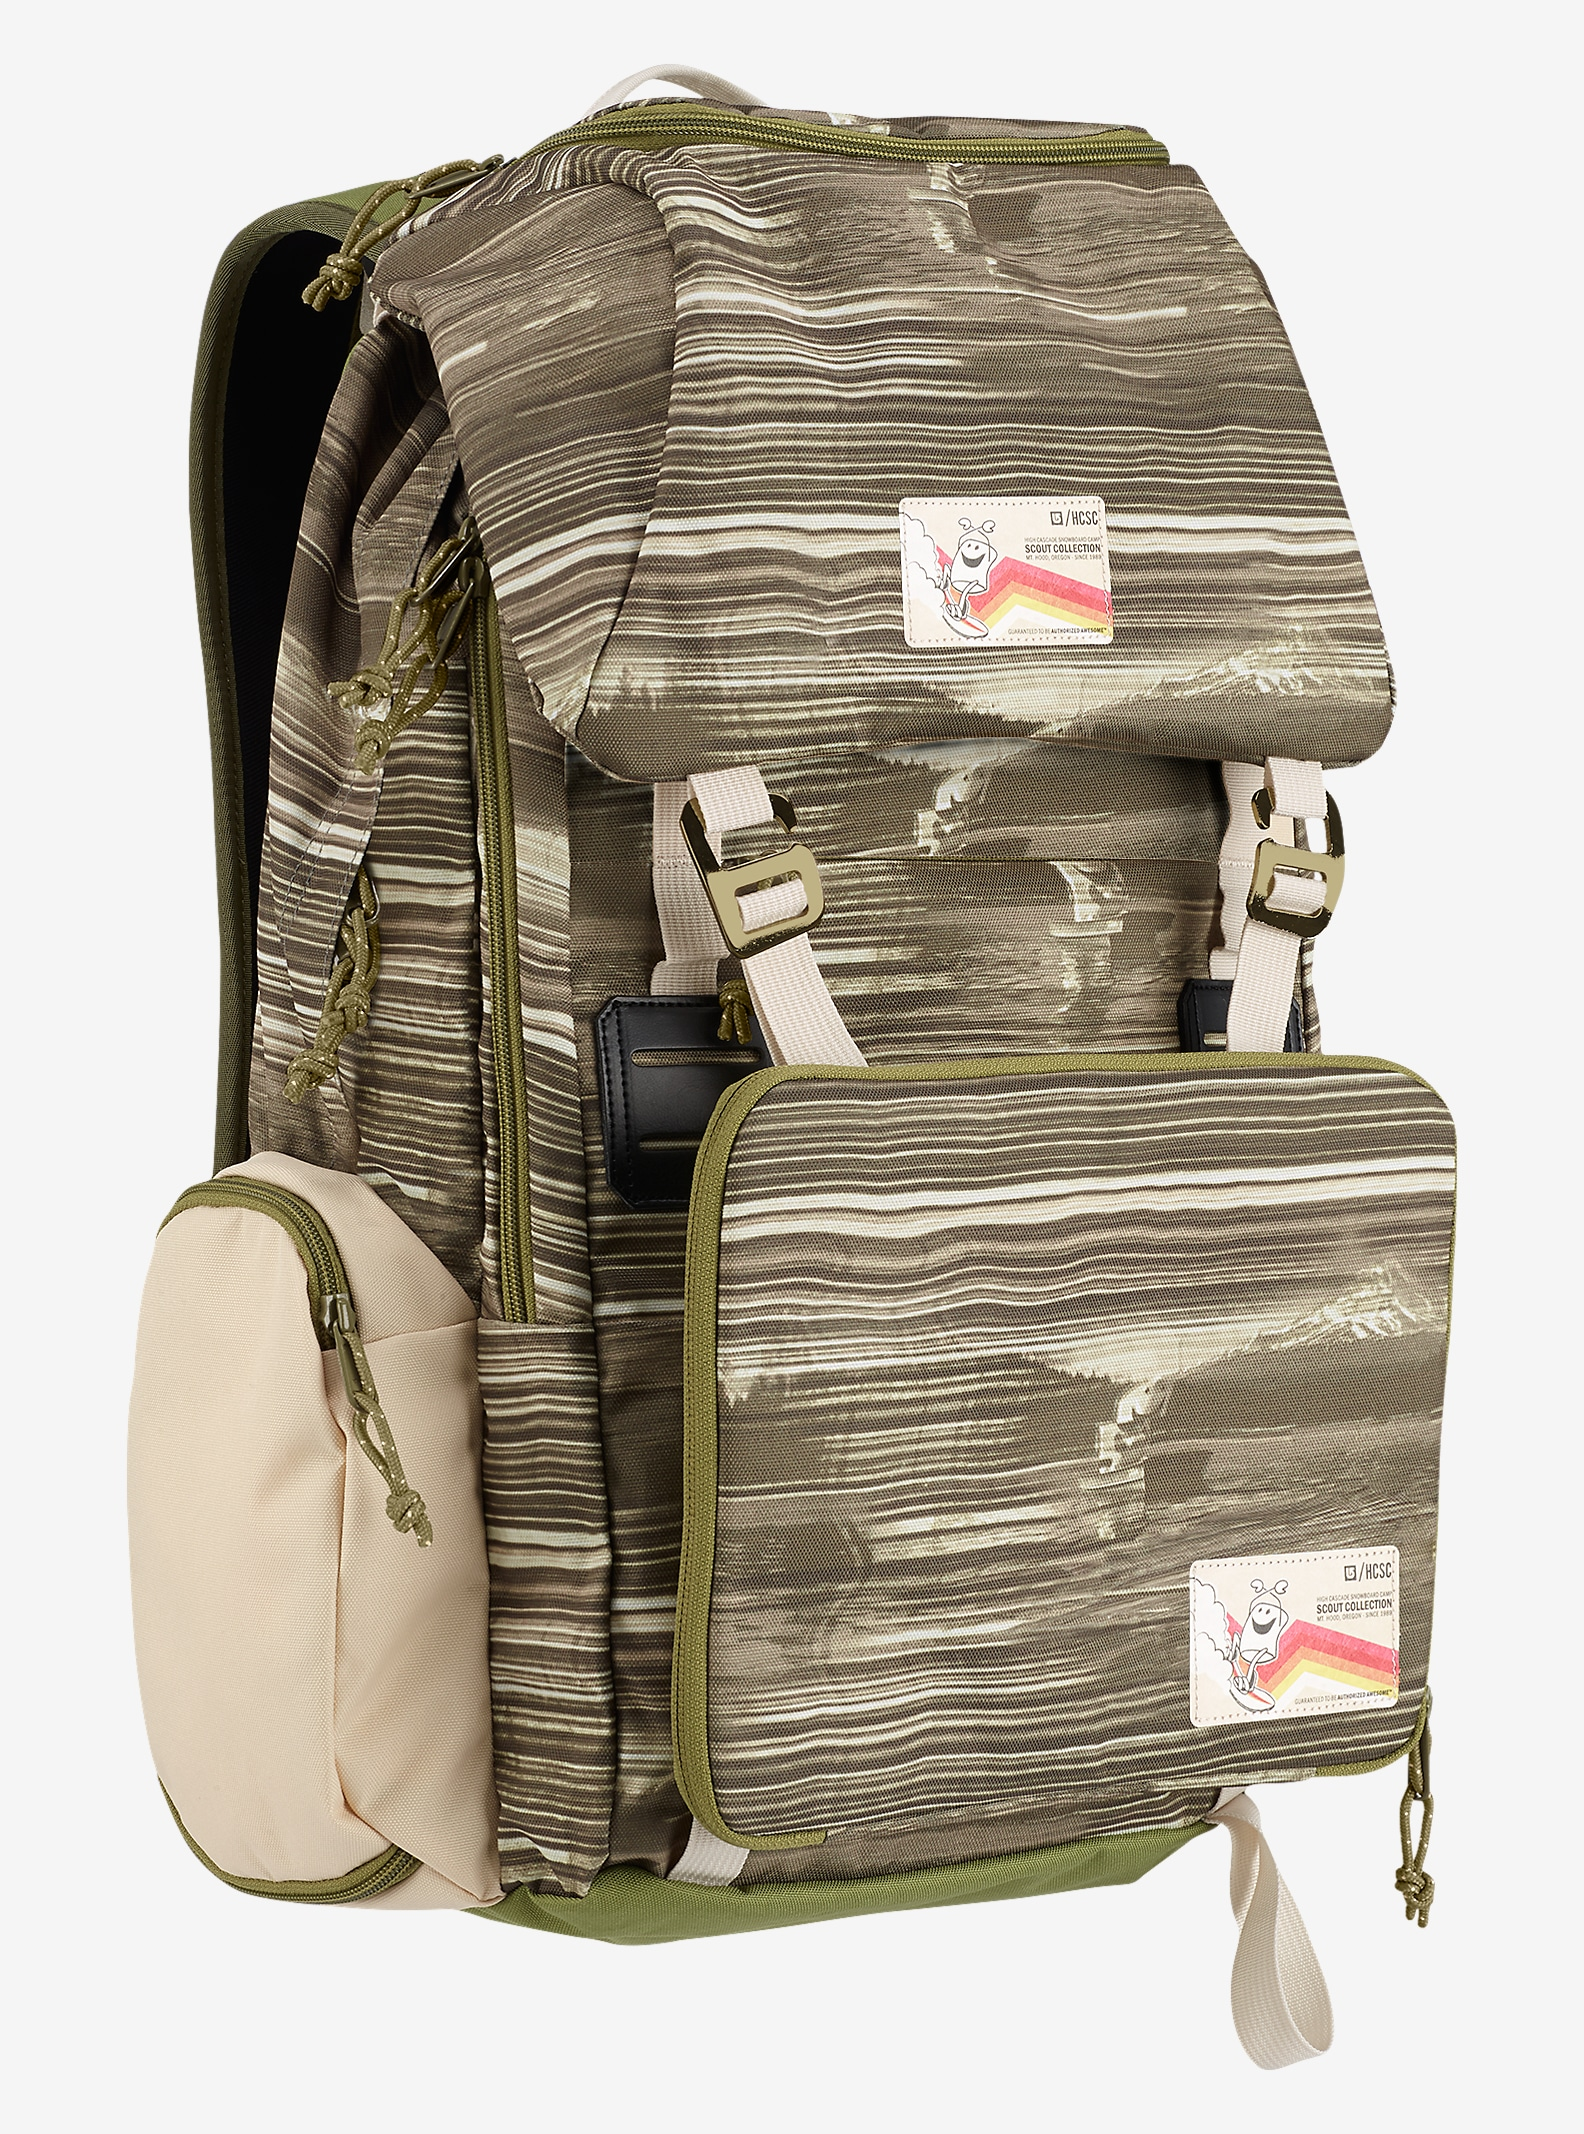 HCSC x Burton Shred Scout Backpack shown in HCSC Scout Tan